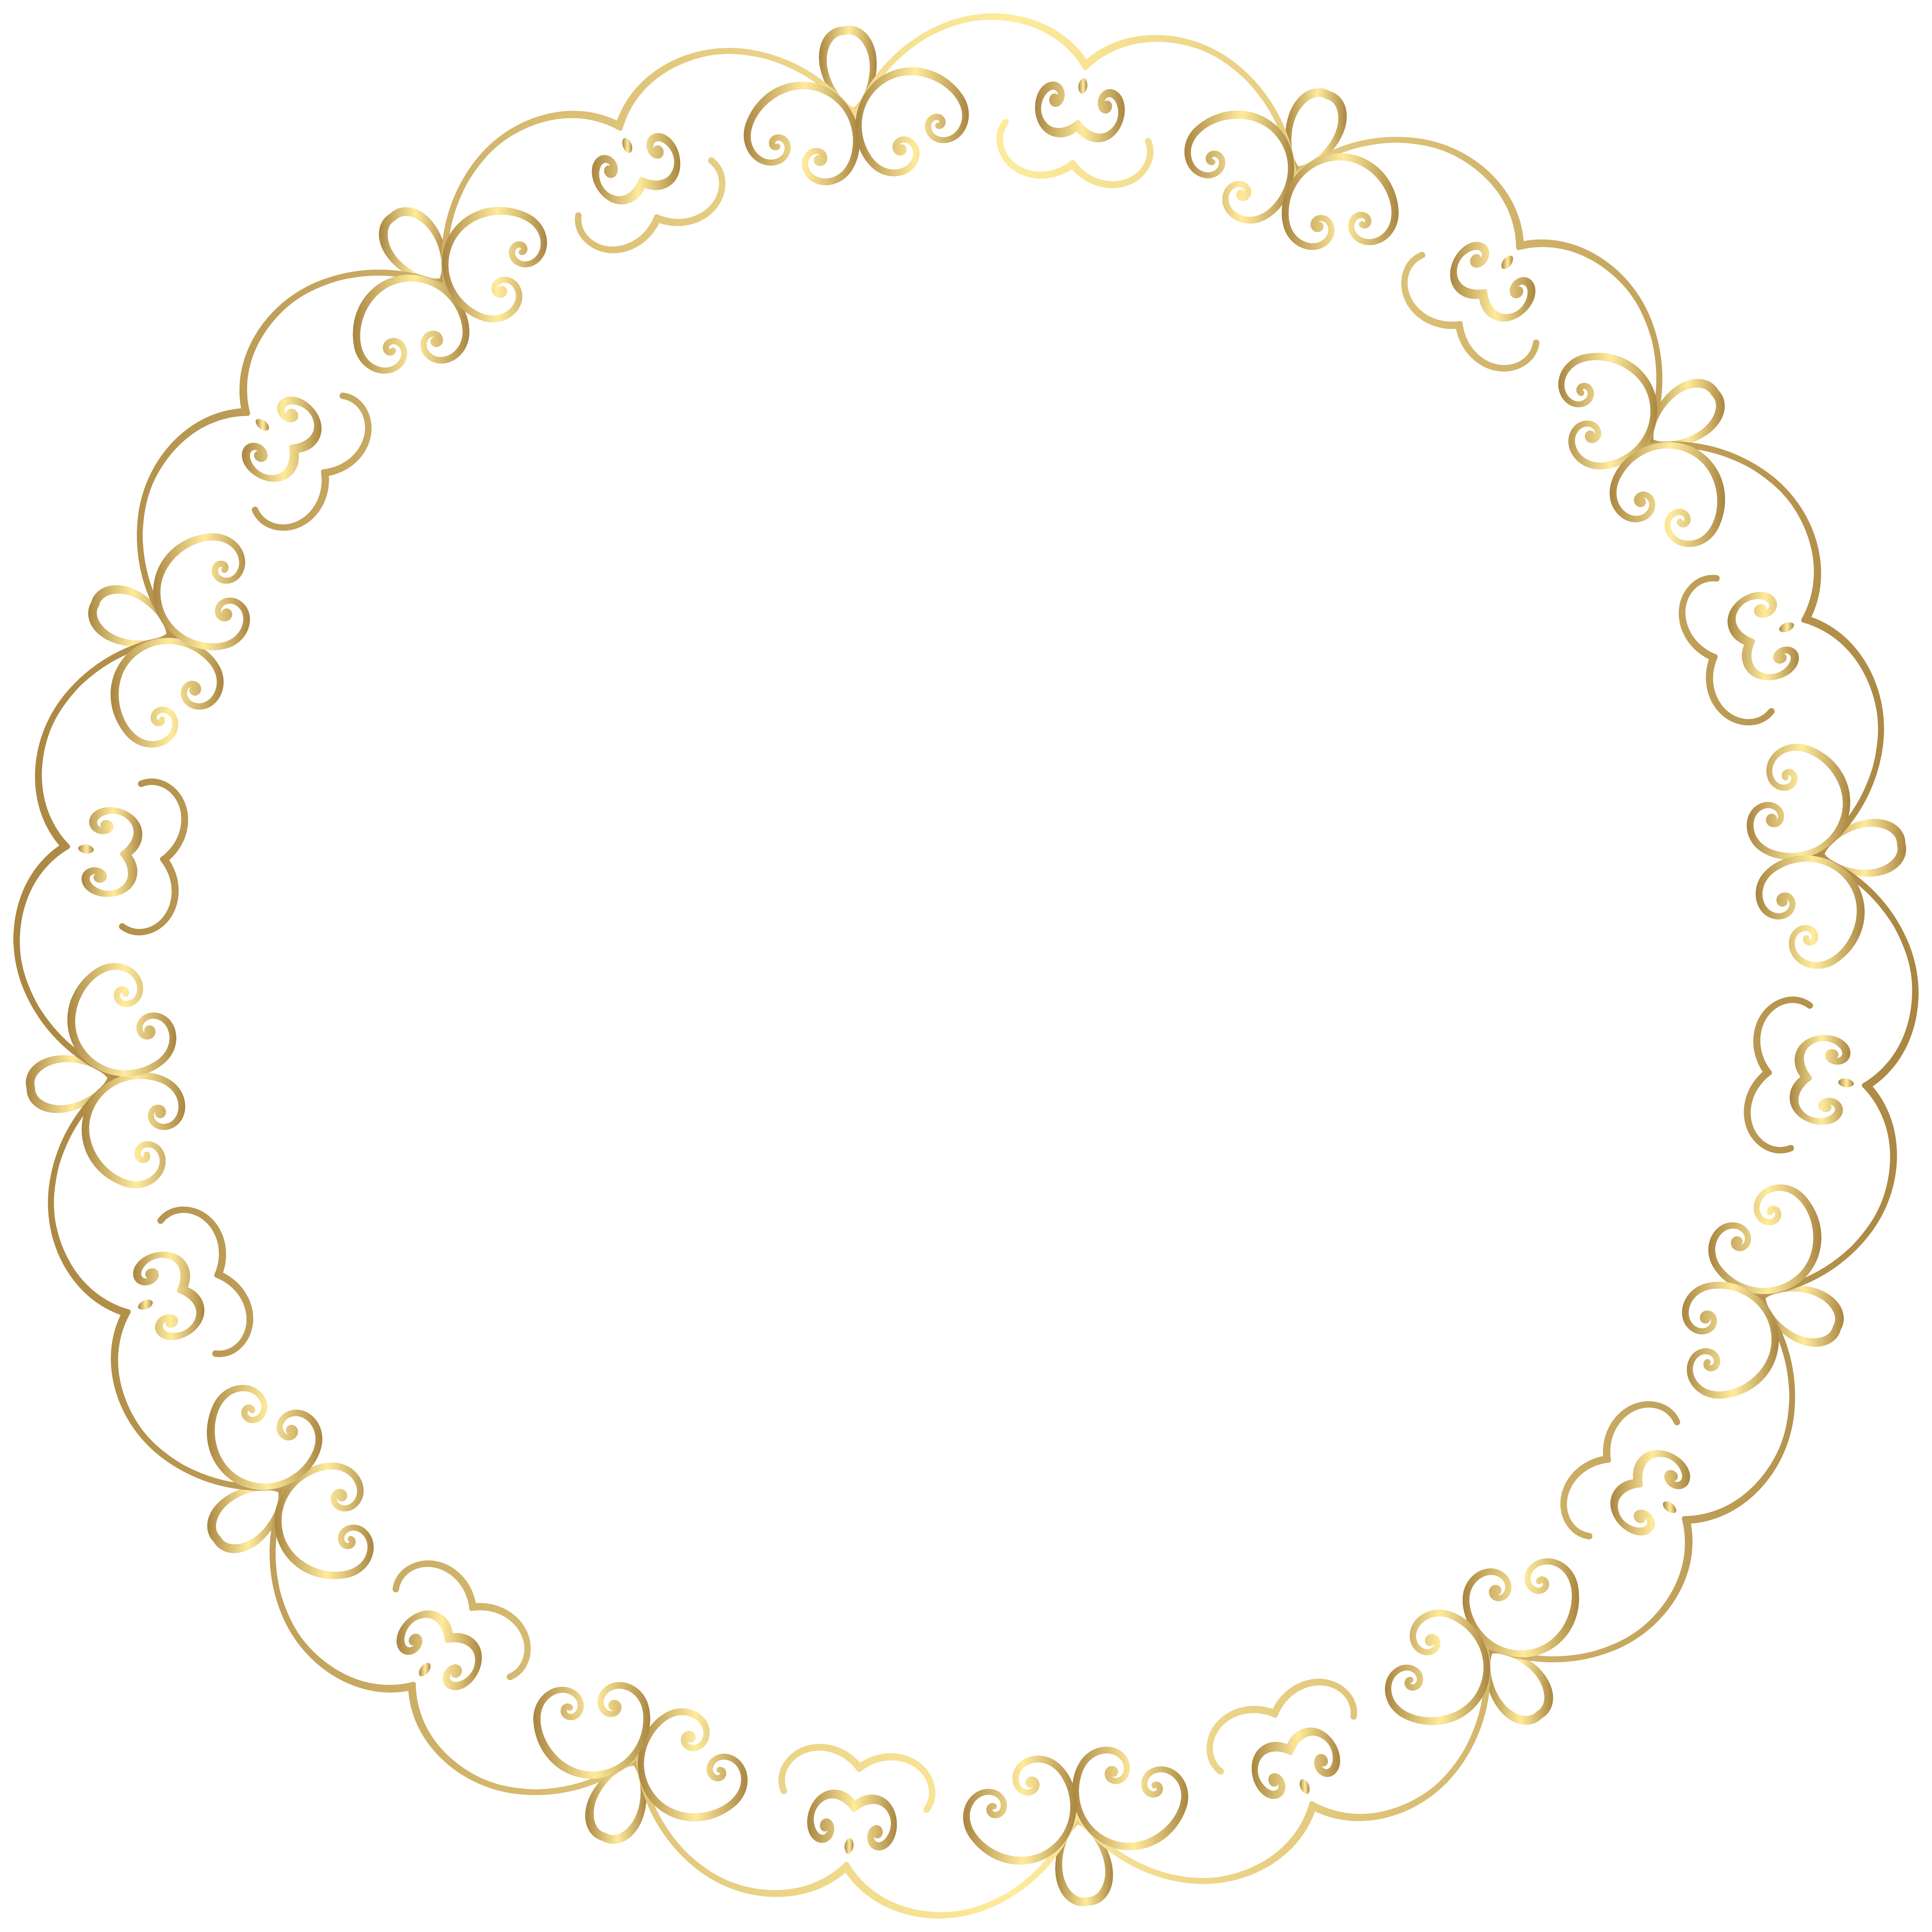 Necklace clipart round gold. Material pearl chain body